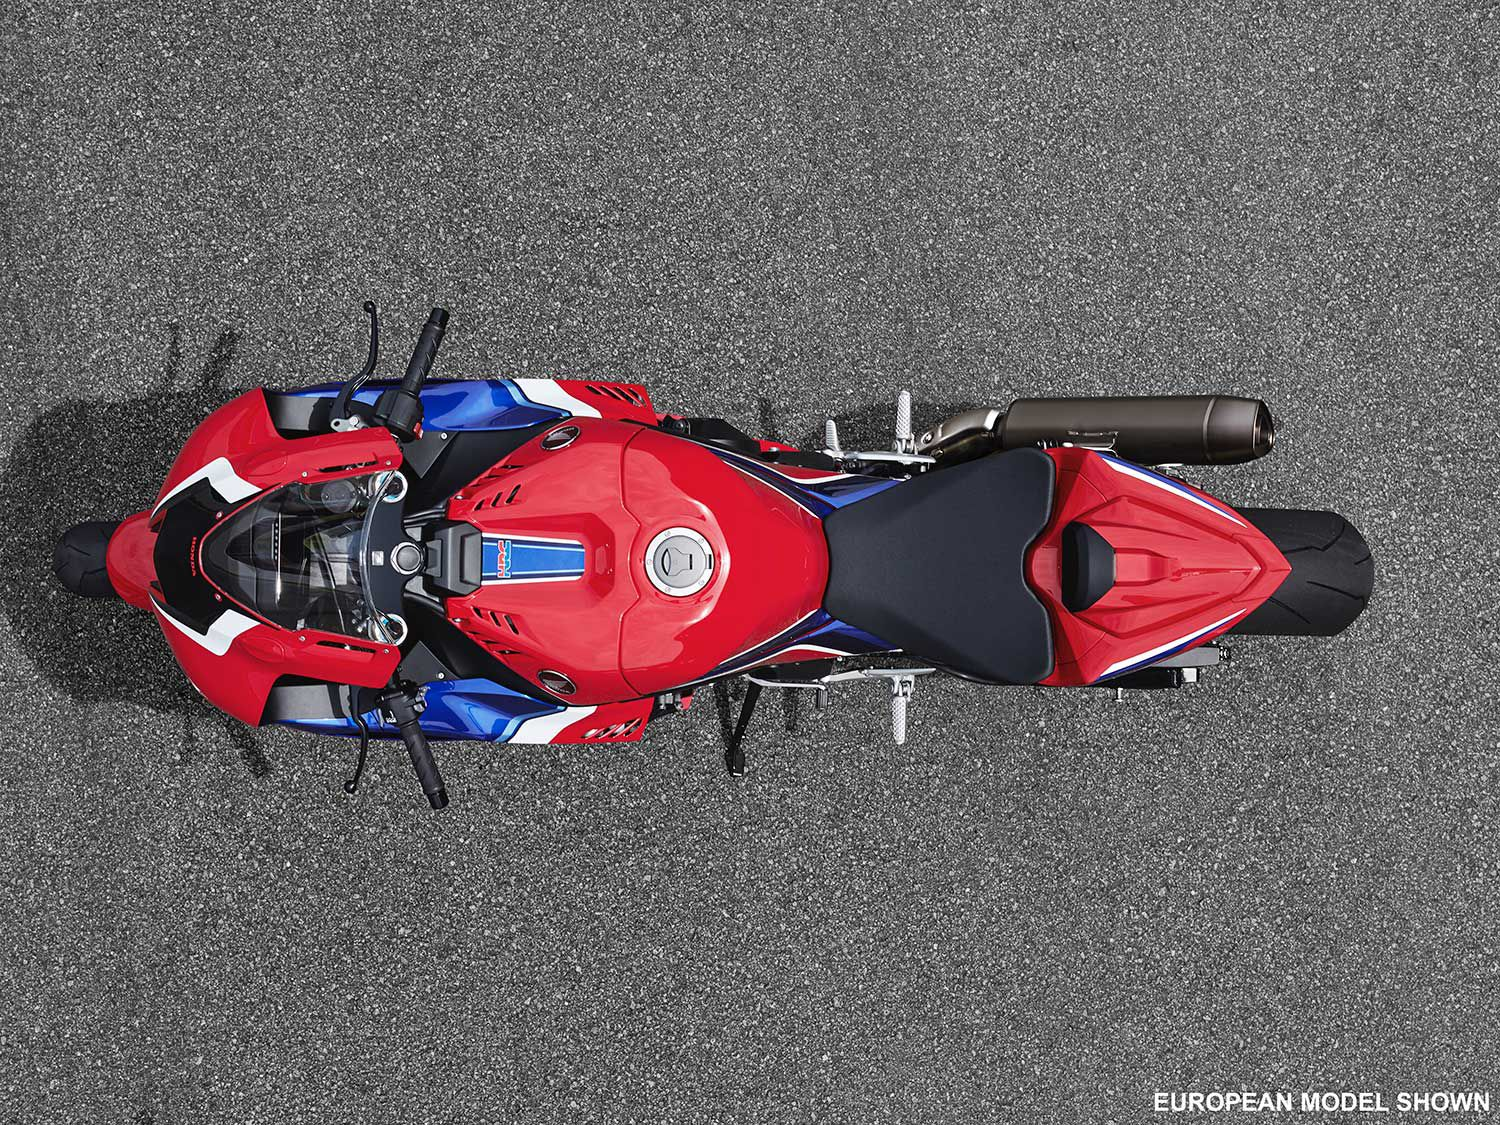 An overhead view of the CBR1000RR-R demonstrates its wide air-piercing profile at the front.